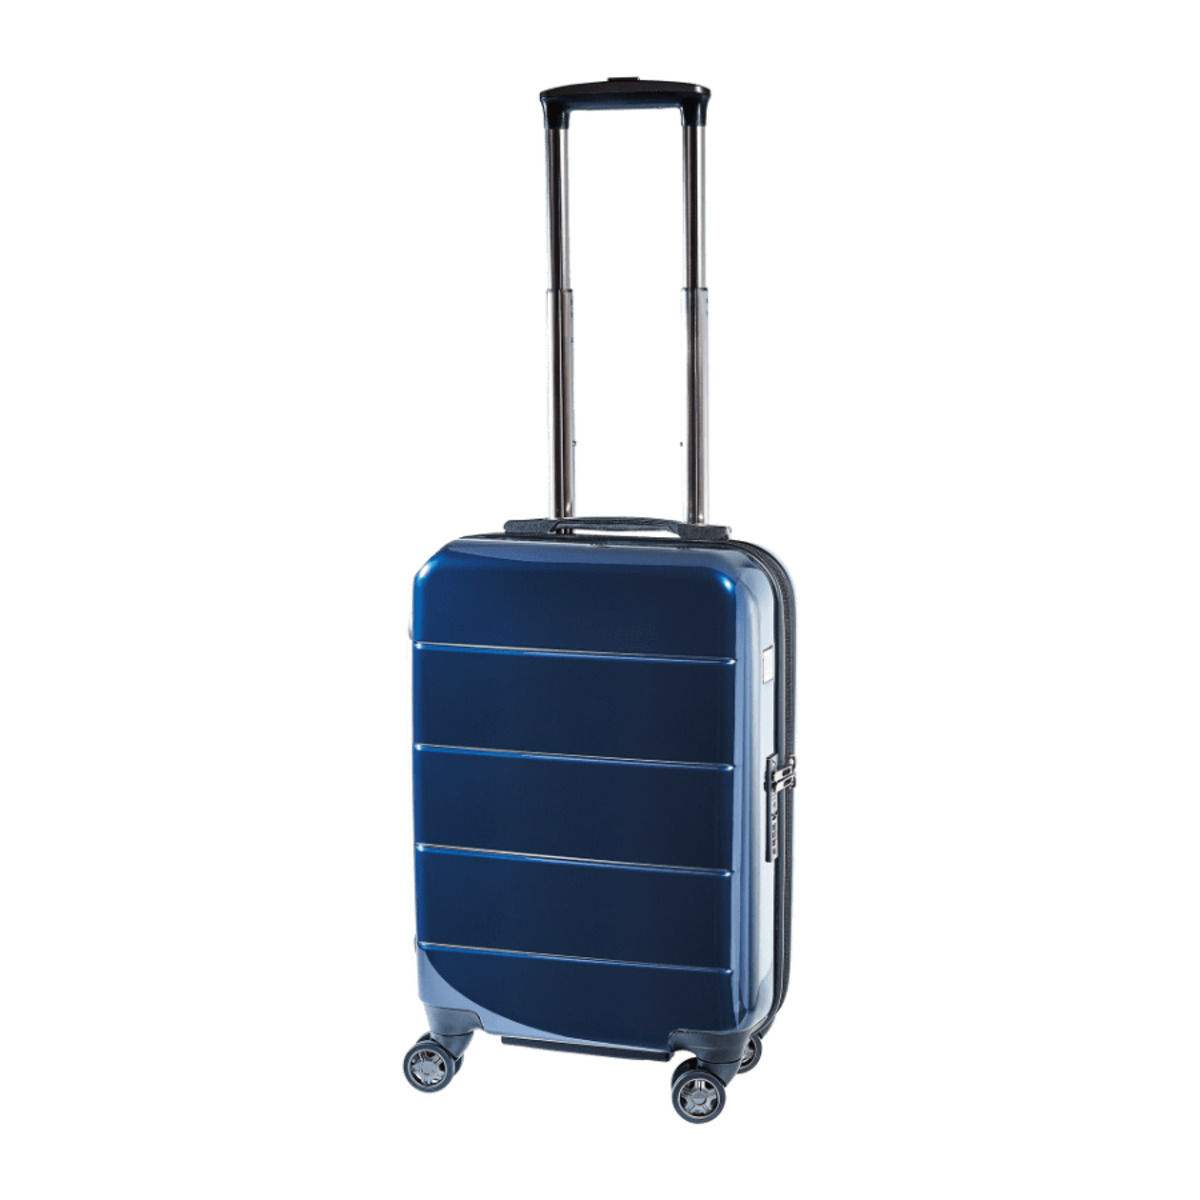 Bild 4 von ROYAL LIFE  	   Trolley Boardcase in Metallic-Optik